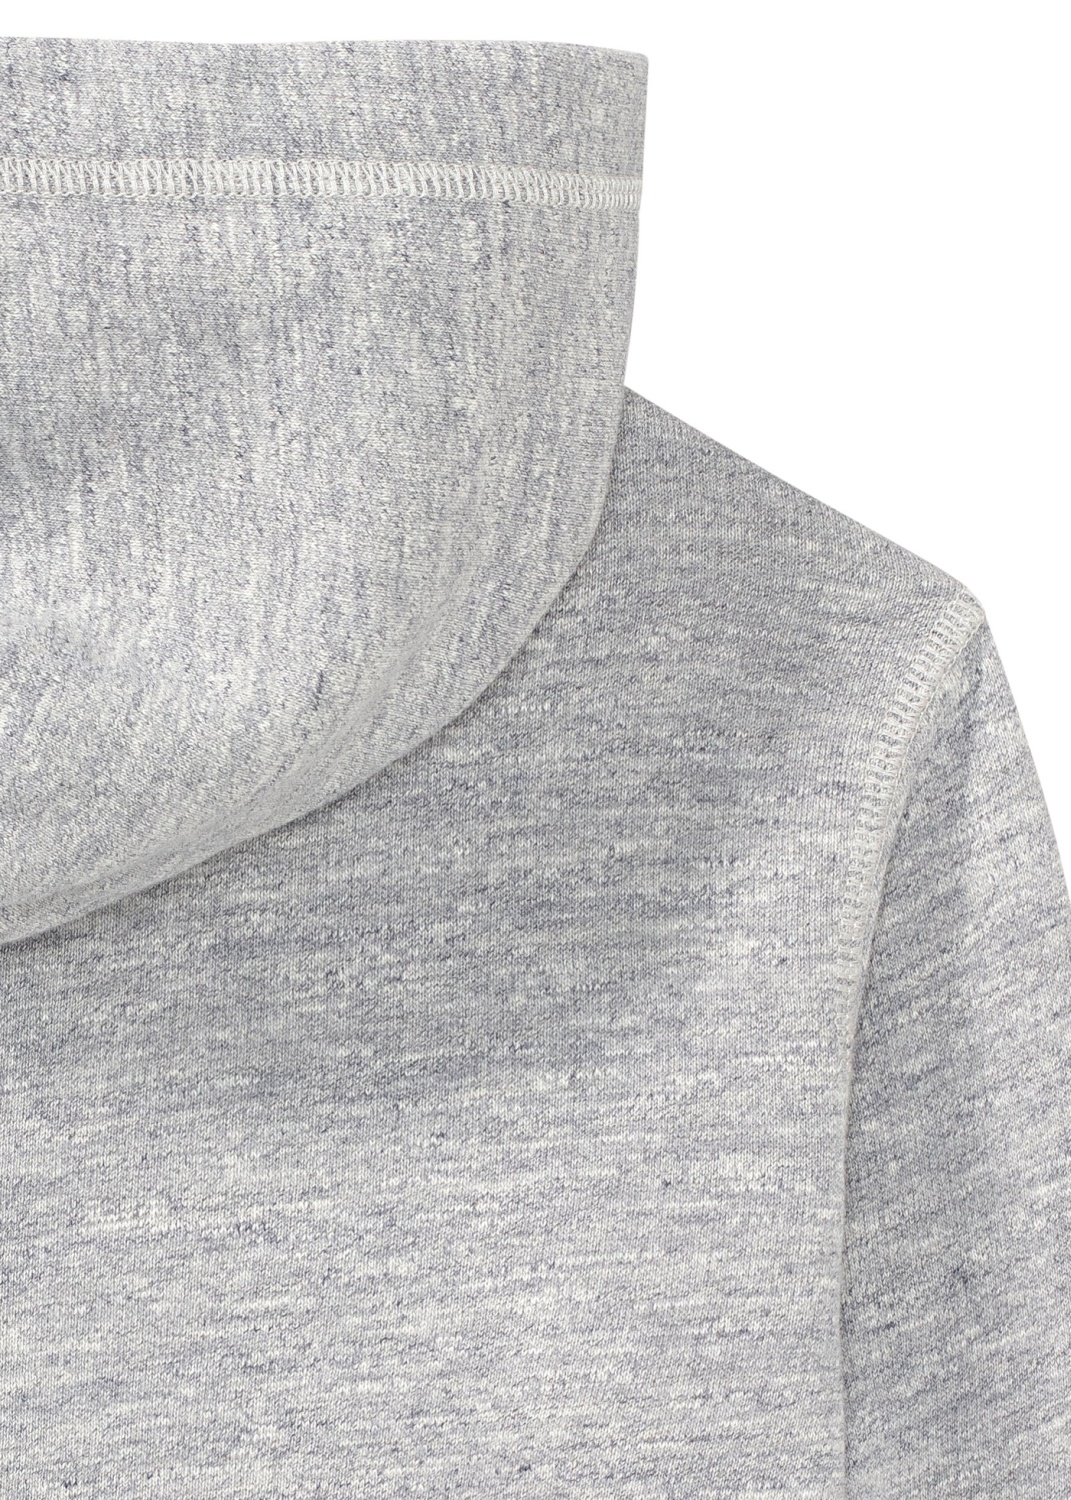 RELAX-ICON Hoodie image number 3